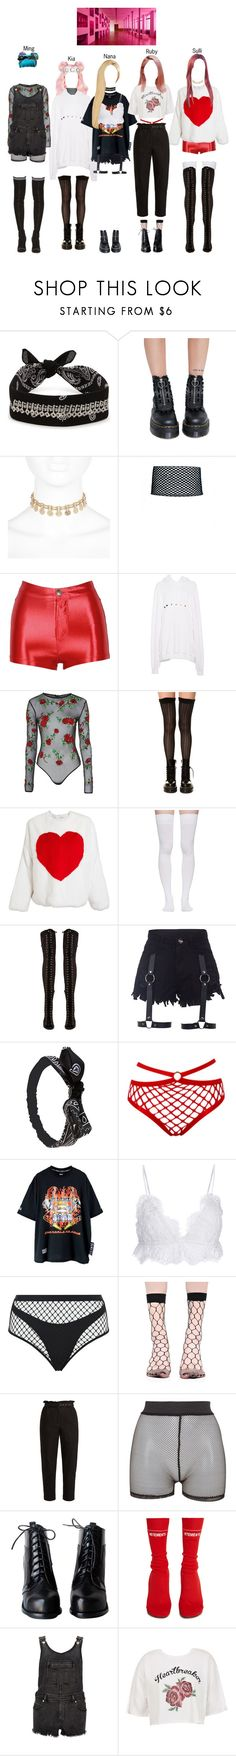 """BABY (아기) — 'Incredibly Strange Creatures' MV"" by officialbaby ❤ liked on Polyvore featuring Fallon, Dr. Martens, River Island, Gucci, Topshop, K. Bell, MSGM, Marieyat, Jeffrey Campbell and Wet Seal"